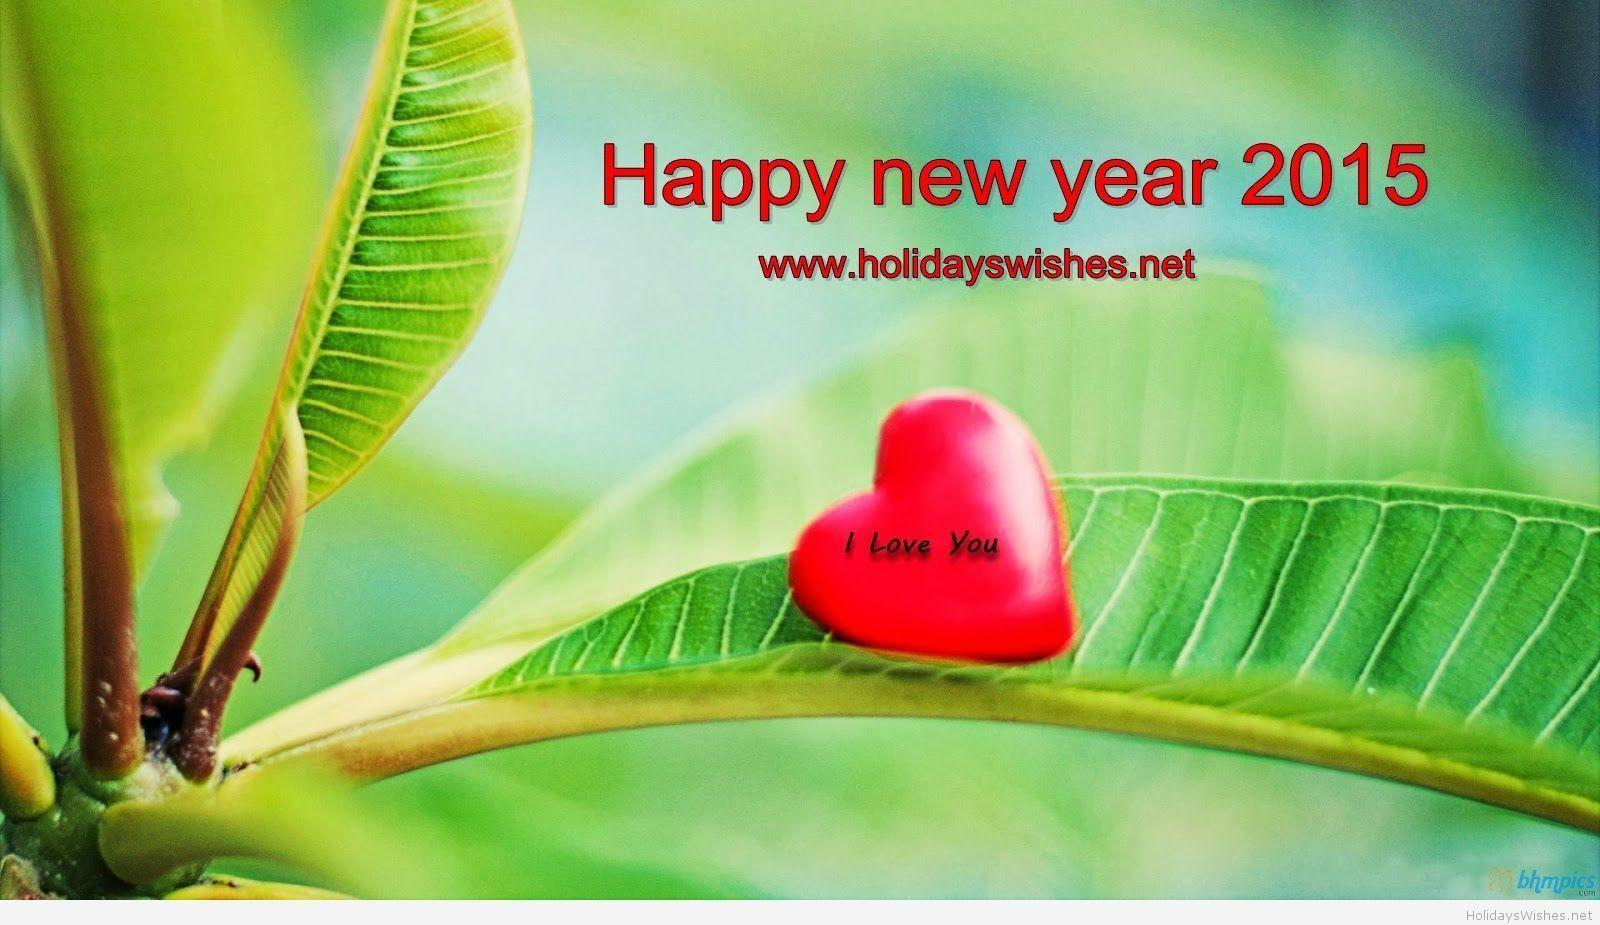 Happy new year and I love you HD wallpapers 2015